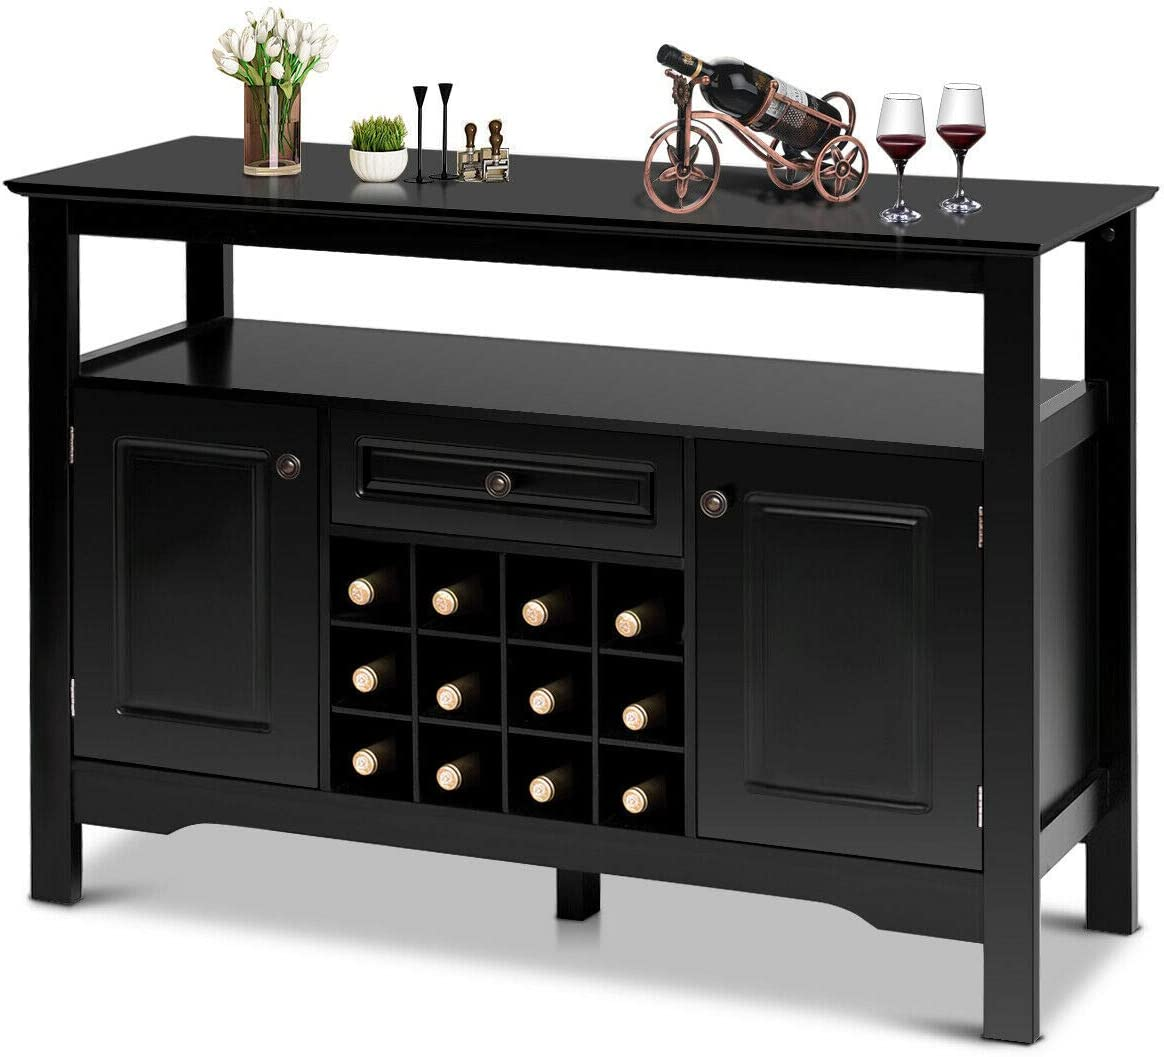 Buffet Console Table Black Storage Cabinet Kitchen Dining Sideboard Display Case